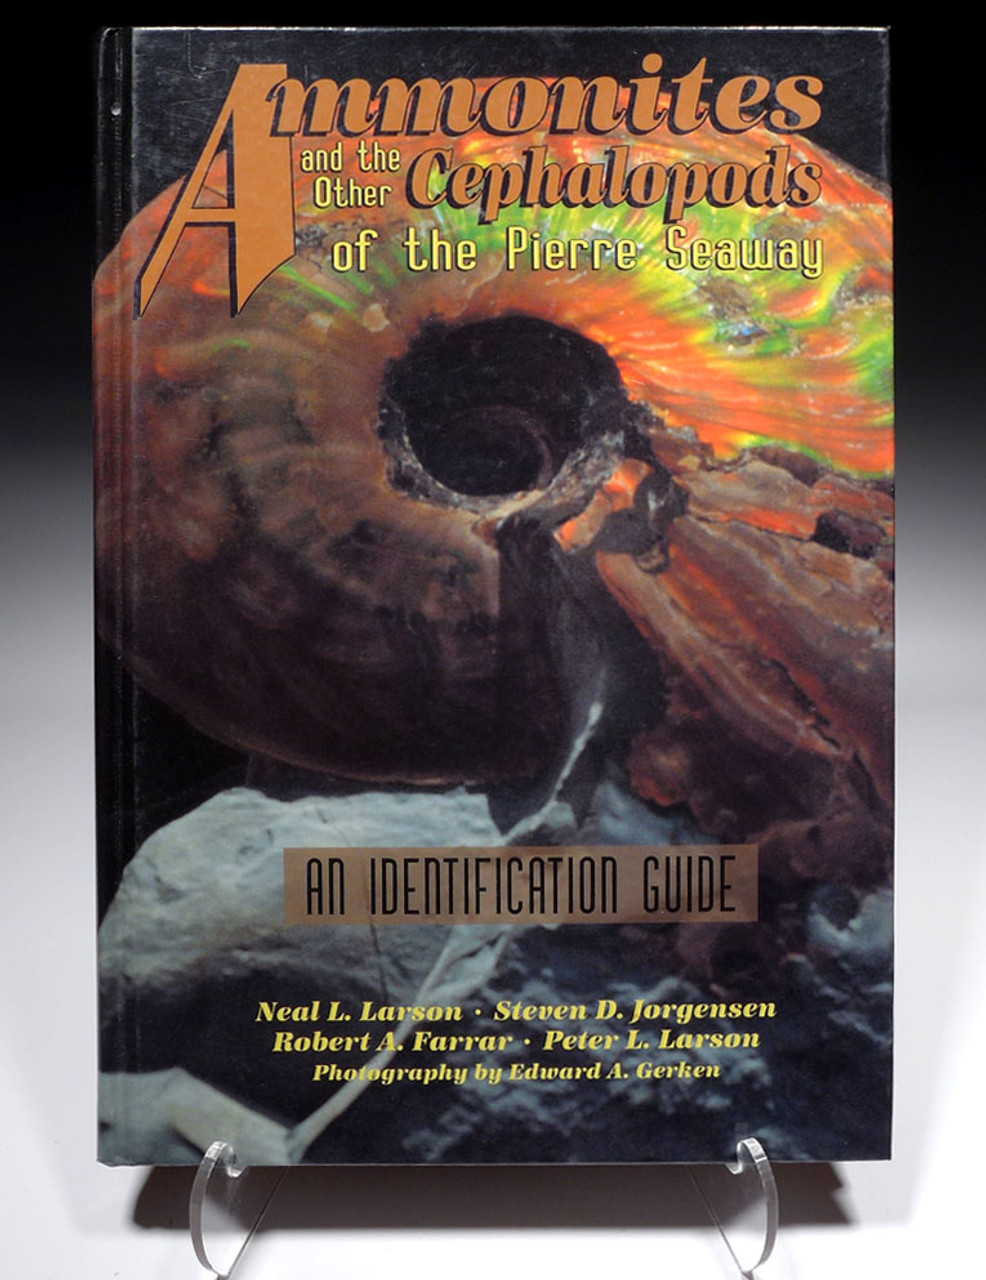 AMMONITES AND OTHER CEPHALOPODS OF THE PIERRE SEAWAY BOOK  *BK10